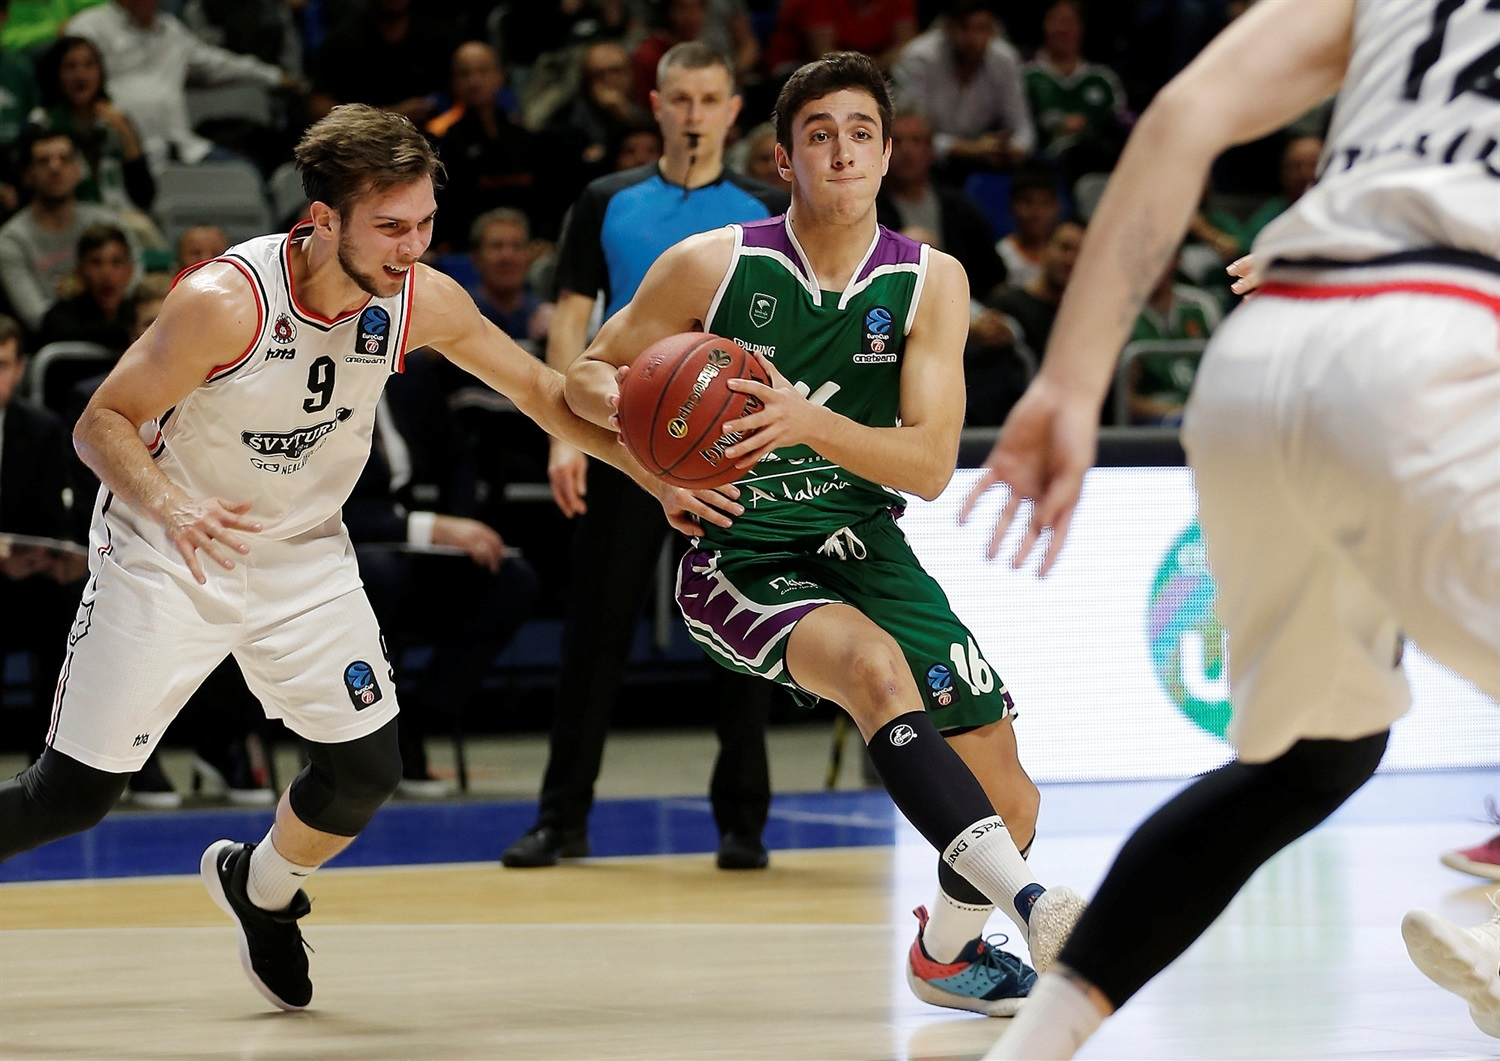 Pablo Sanchez - Unicaja Malaga (photo Unicaja) - EC18